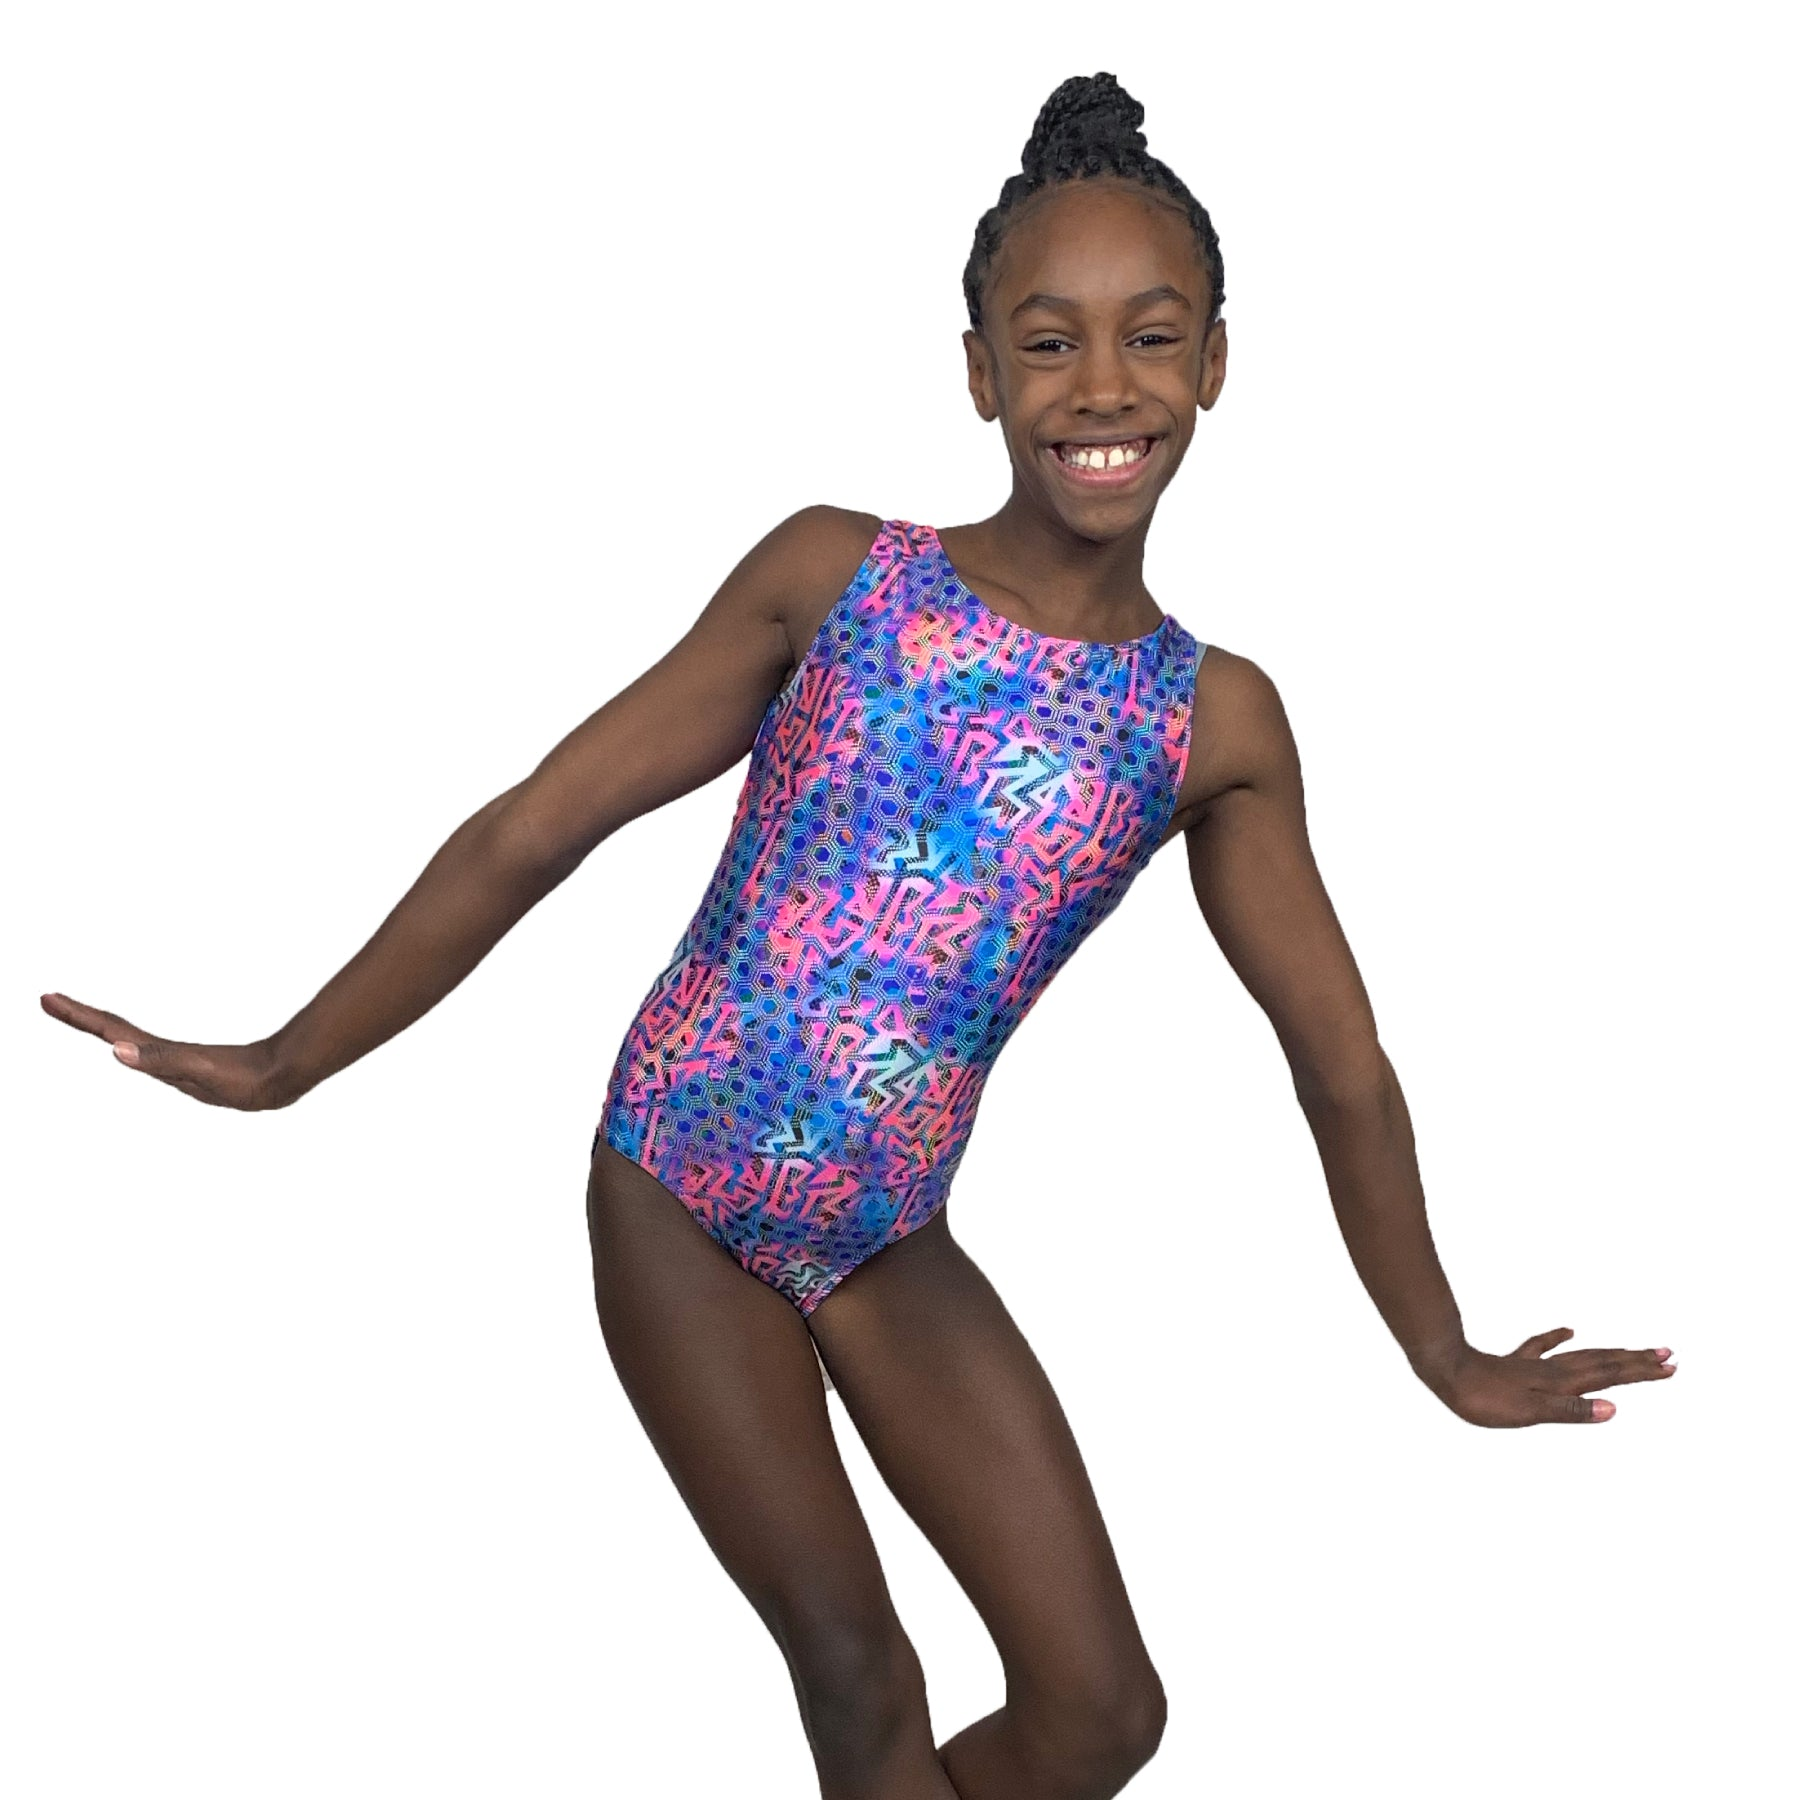 Model Shapes Leotard